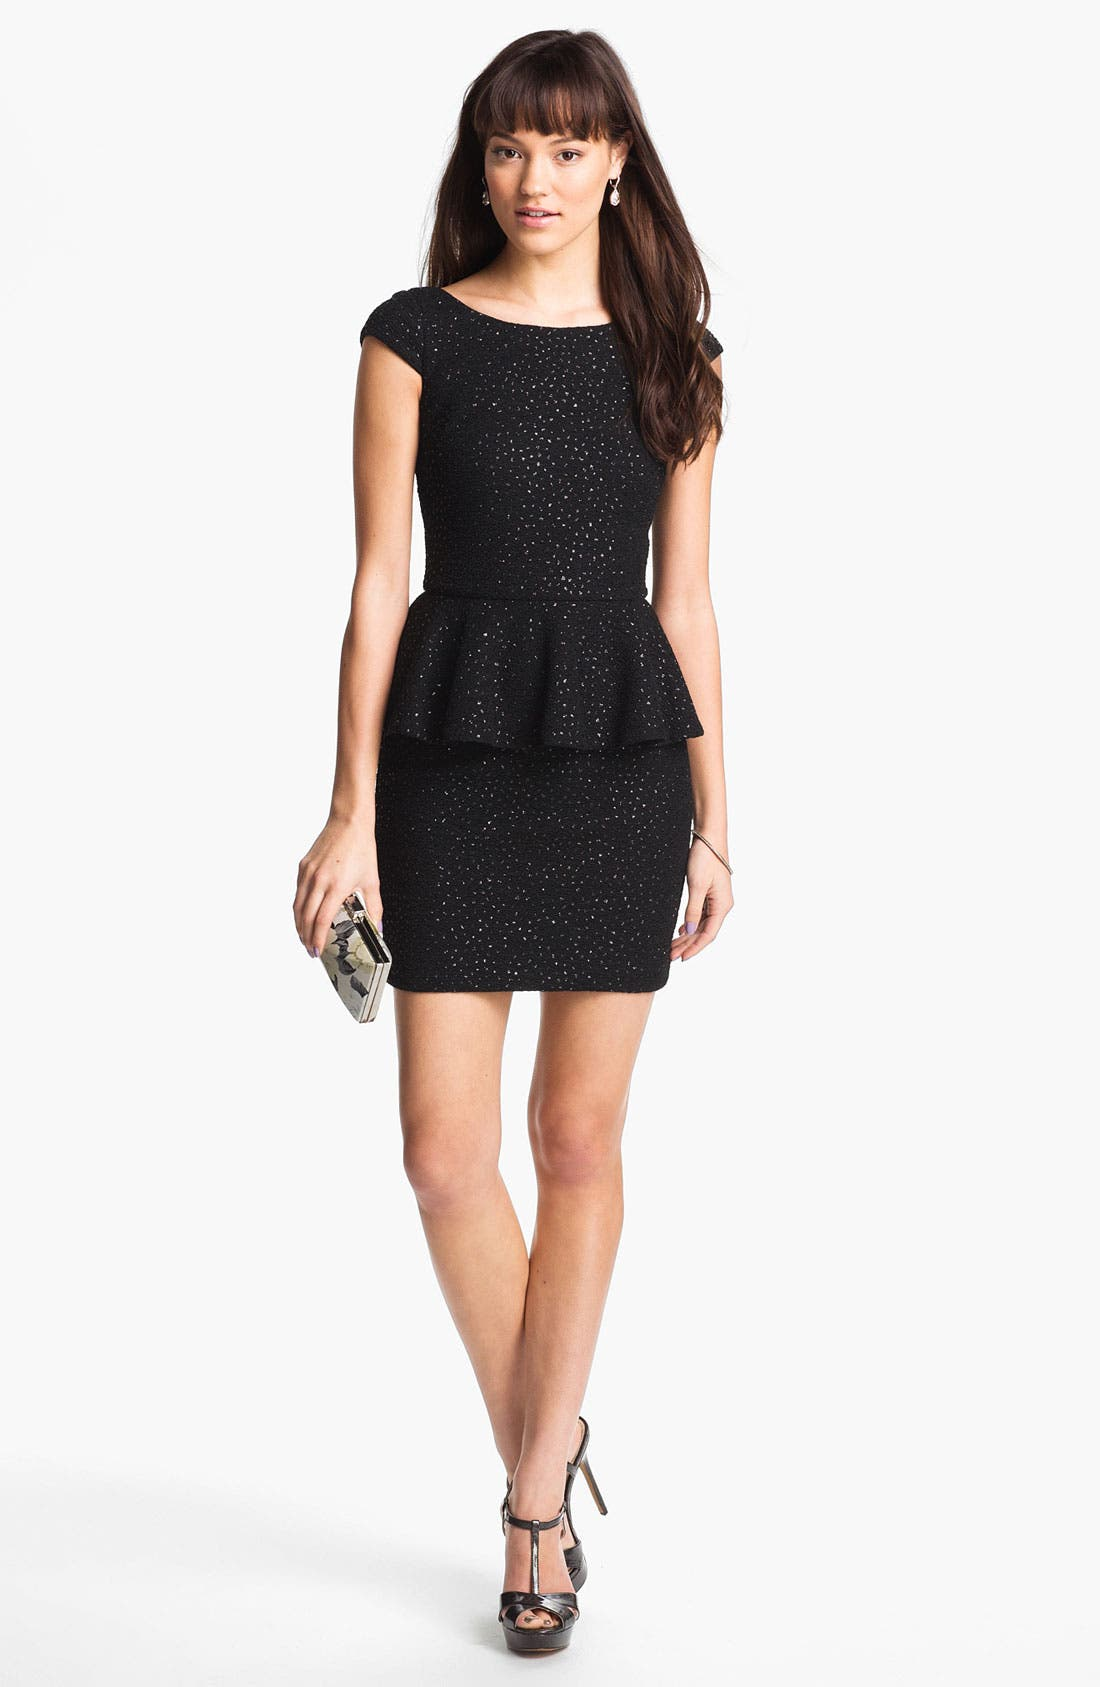 Main Image - Hailey by Adrianna Papell Crinkled Jersey Peplum Dress (Online Exclusive)